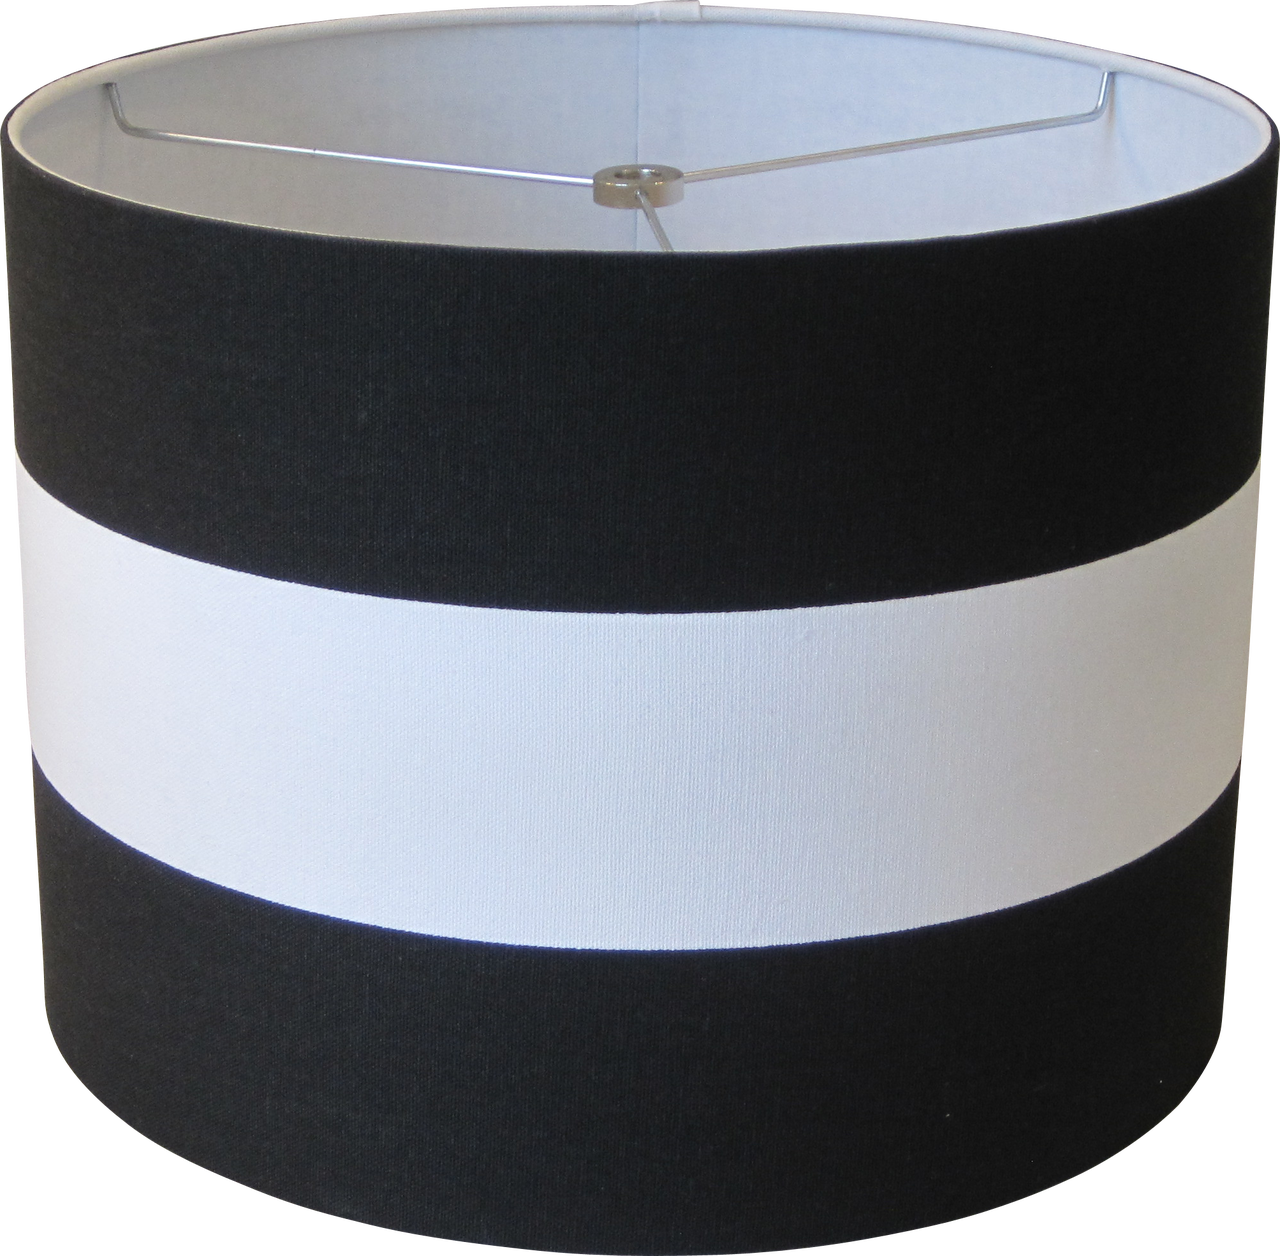 lampshapes.com - Black and White Striped Lamp Shade - Drum, $84.99 ...:lampshapes.com - Black and White Striped Lamp Shade - Drum, $84.99 with FREE,Lighting